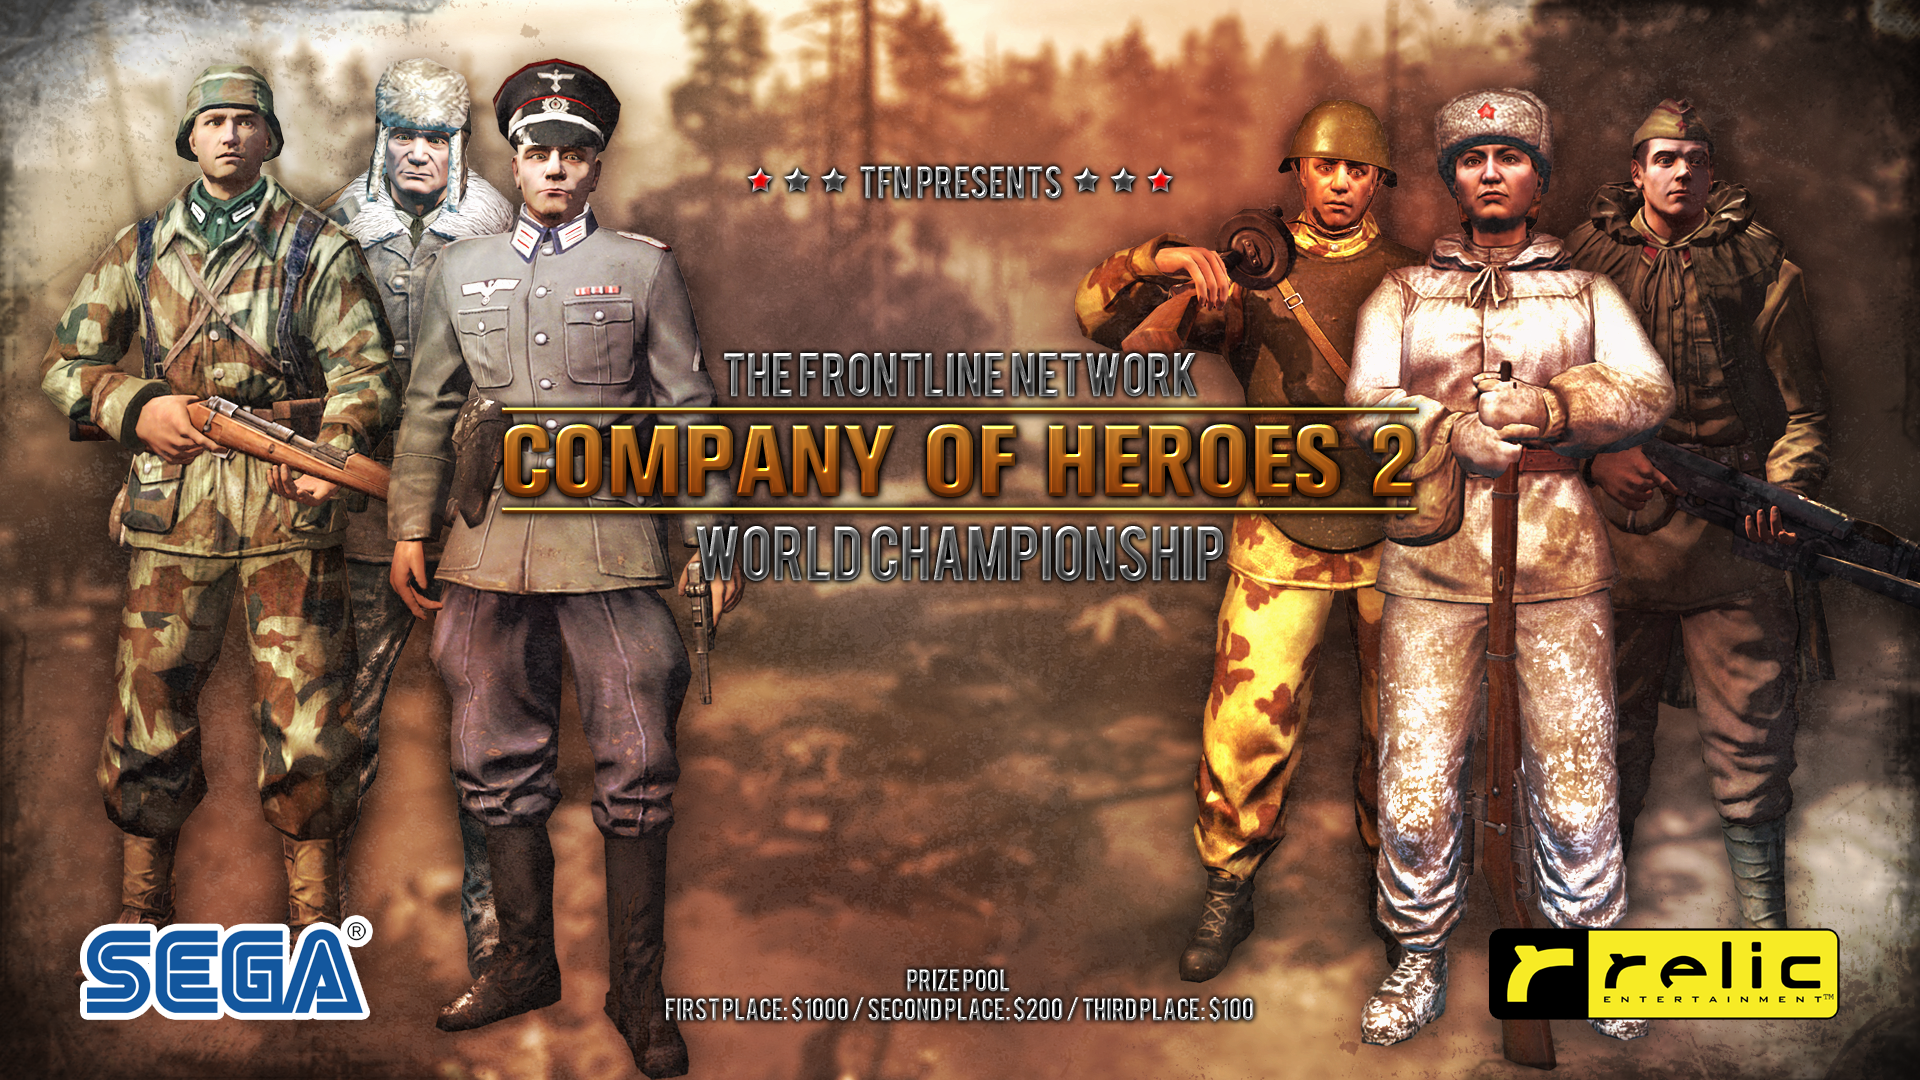 Tfn World Championship Broadcast Shows Company Of Heroes 2